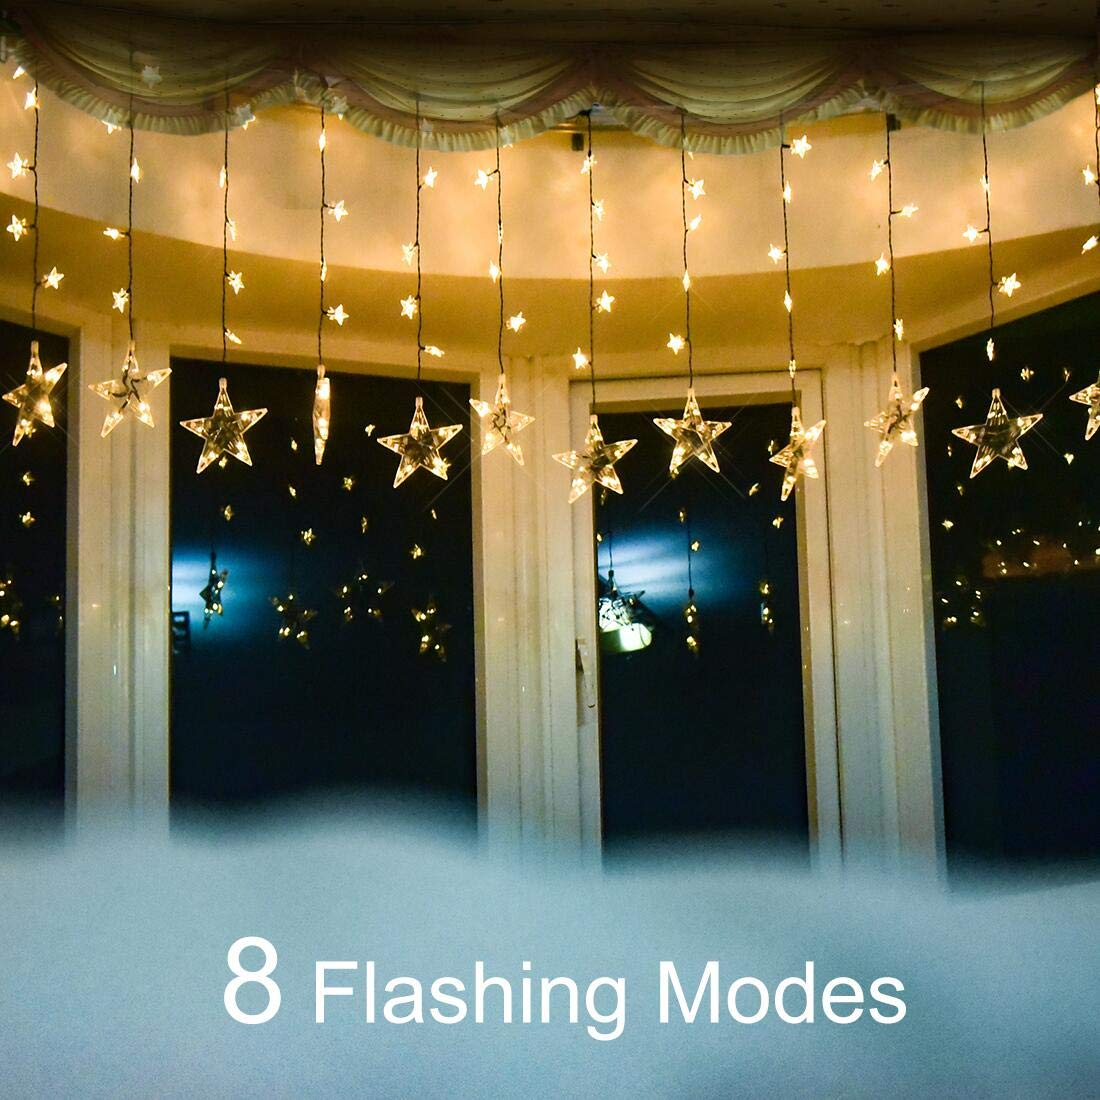 YoyoKit Curtain String Lights, 7ft 120 LED Stars Window Curtain Light with 8 Flashing Modes for Christmas, Wedding, Party, Home, Patio